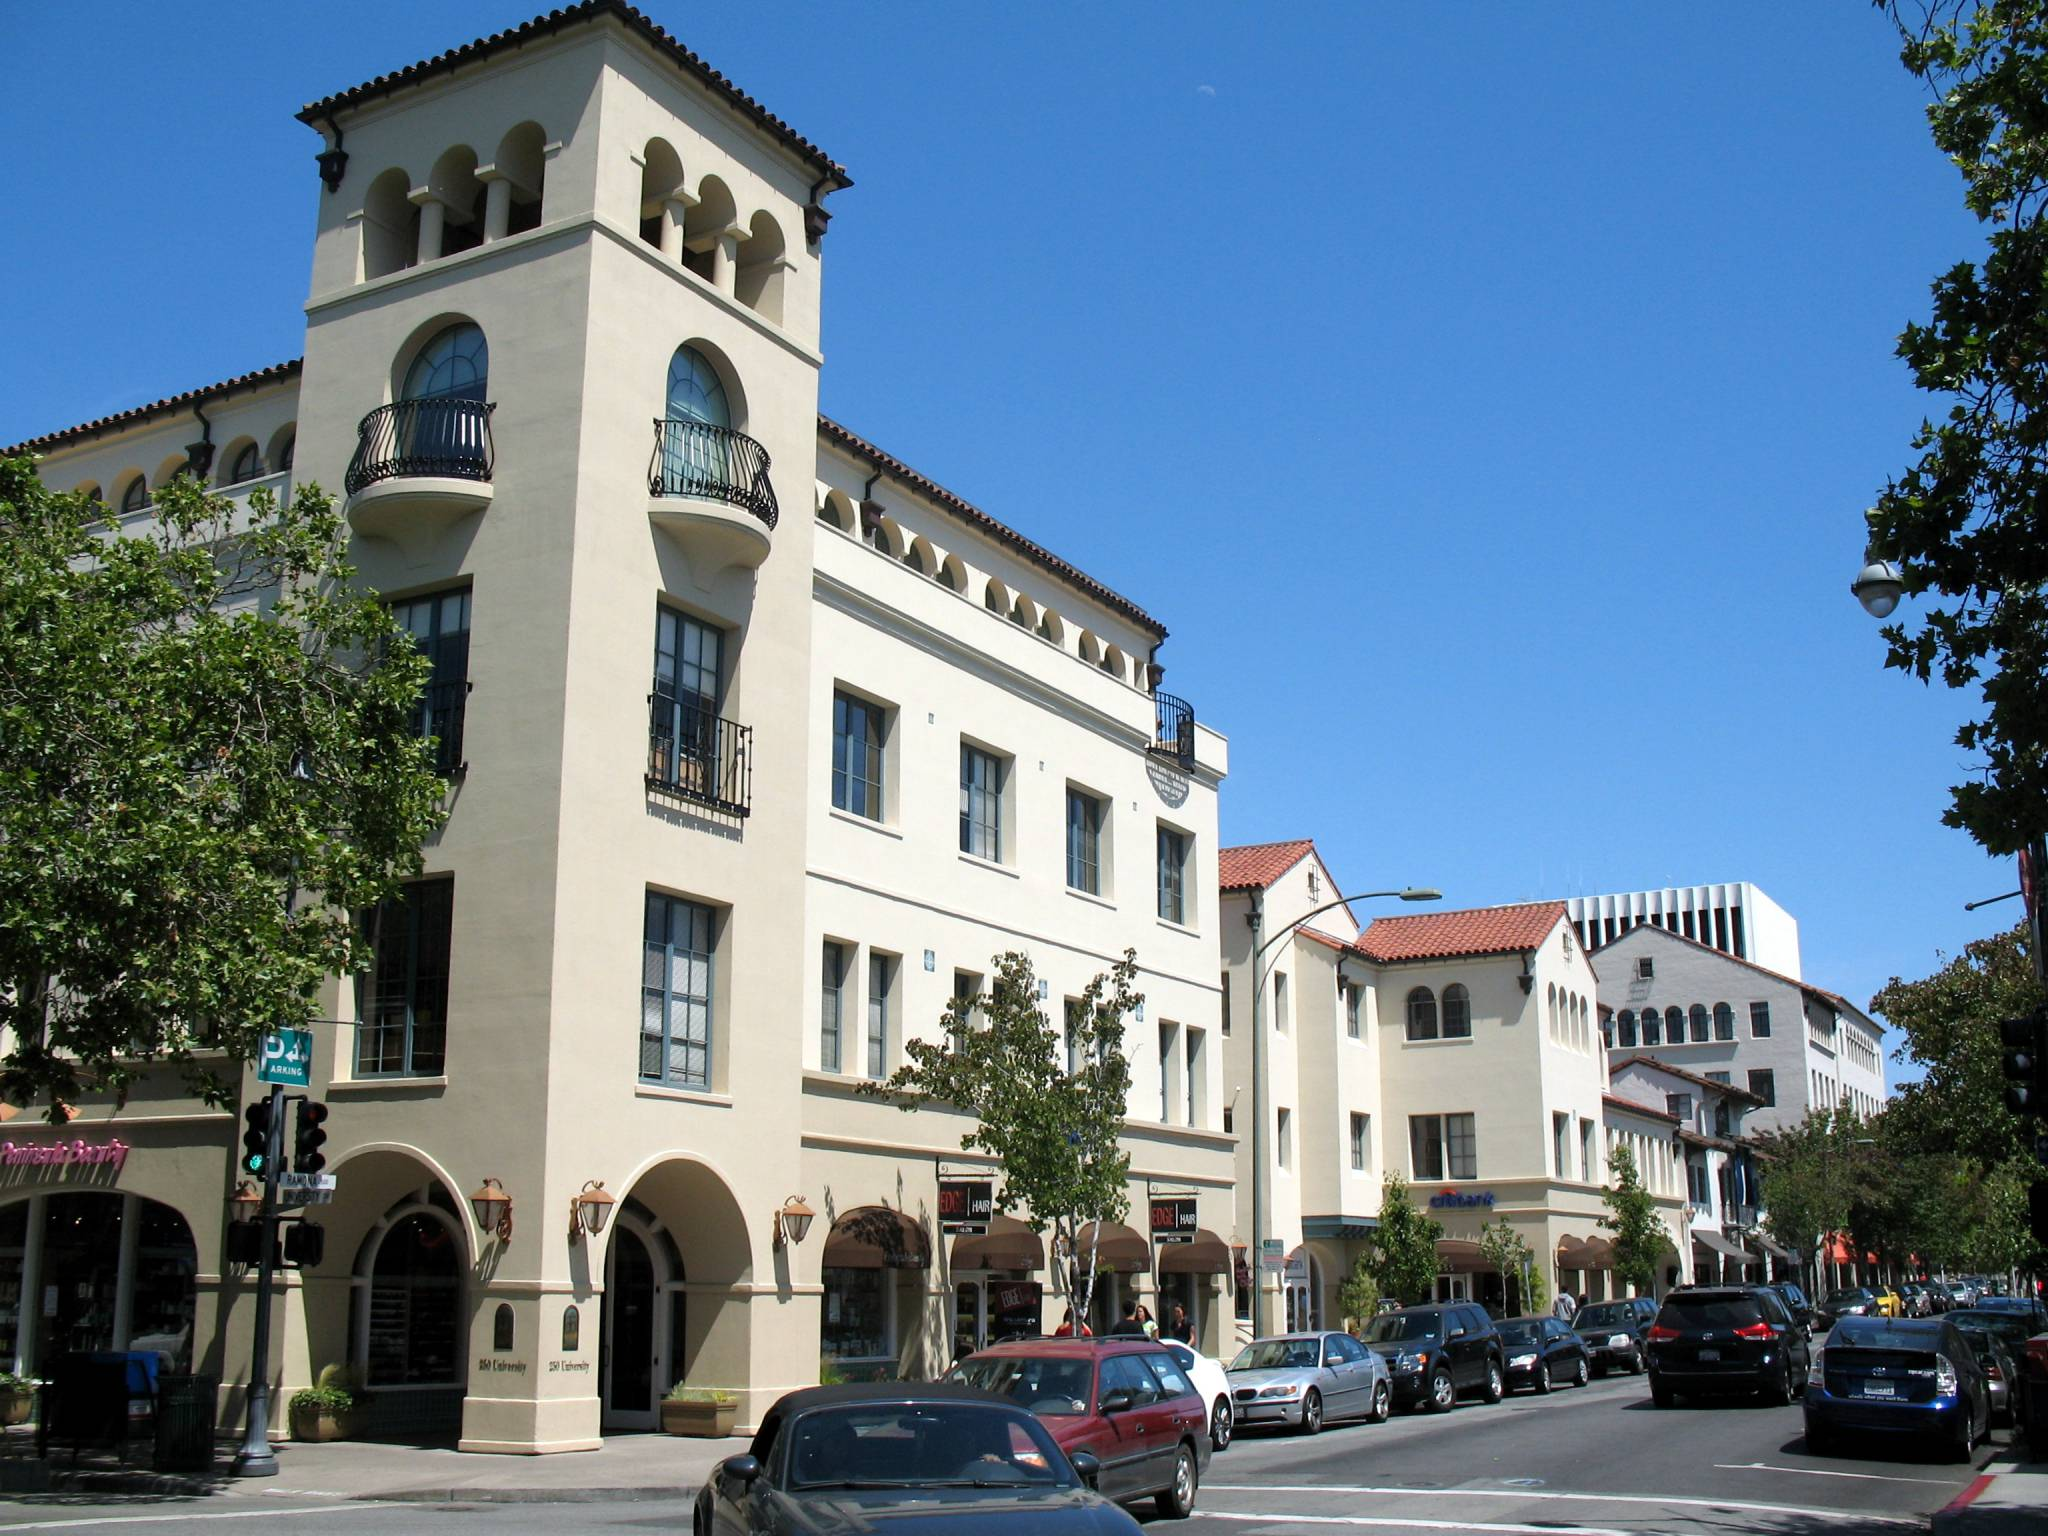 Ramona Street Architectural District, north side of Ramona St. from University Ave., Palo Alto, CA